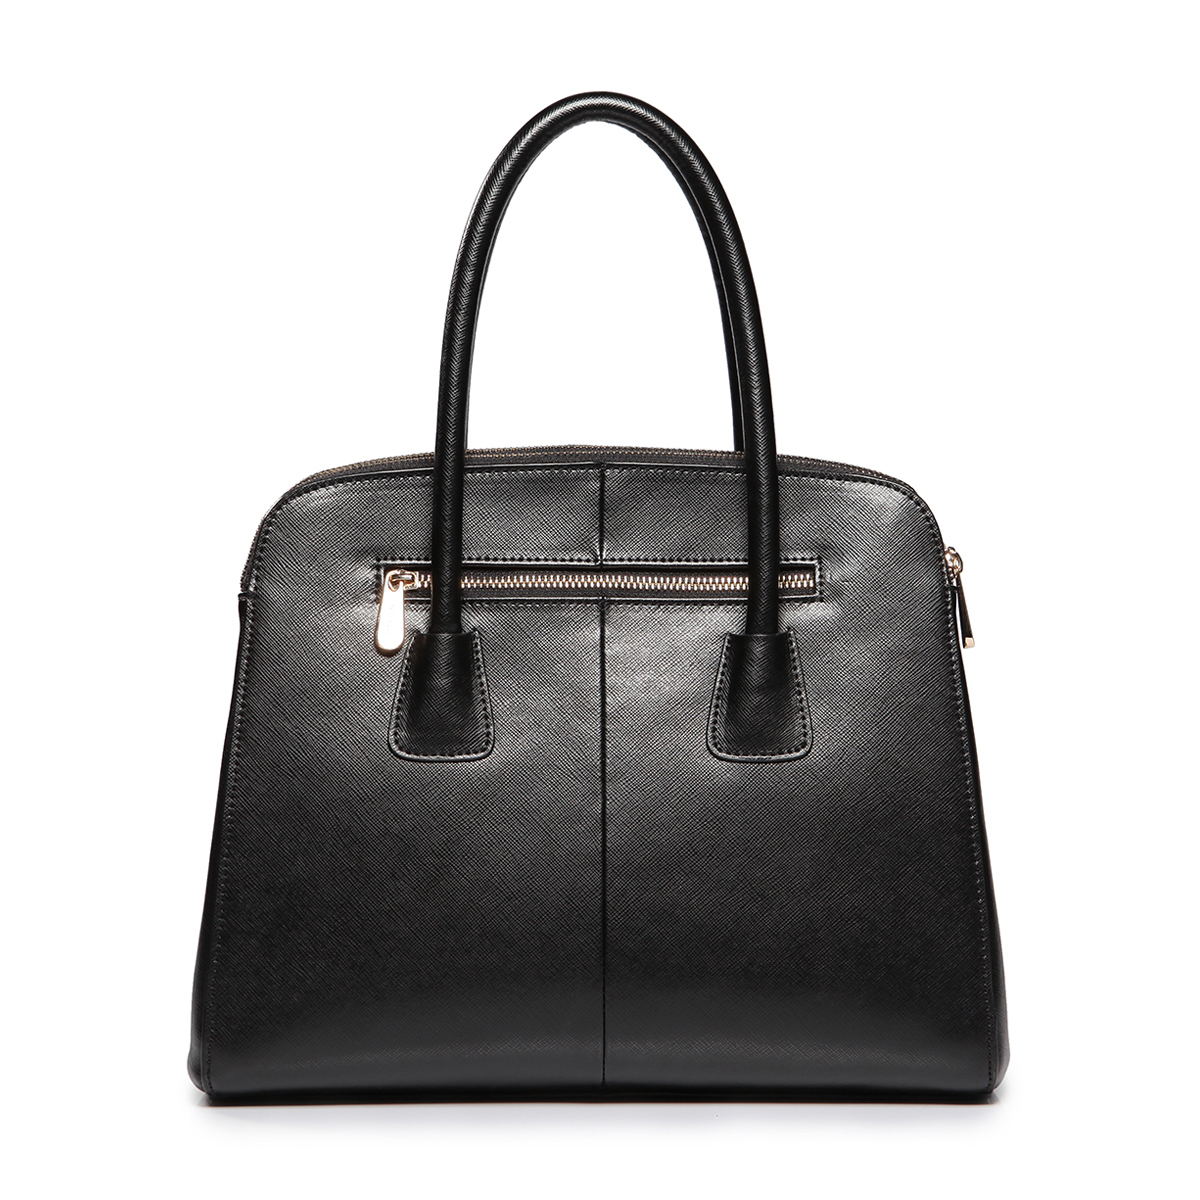 Bags > High quality Cowhide leather wholesale women handbags Black